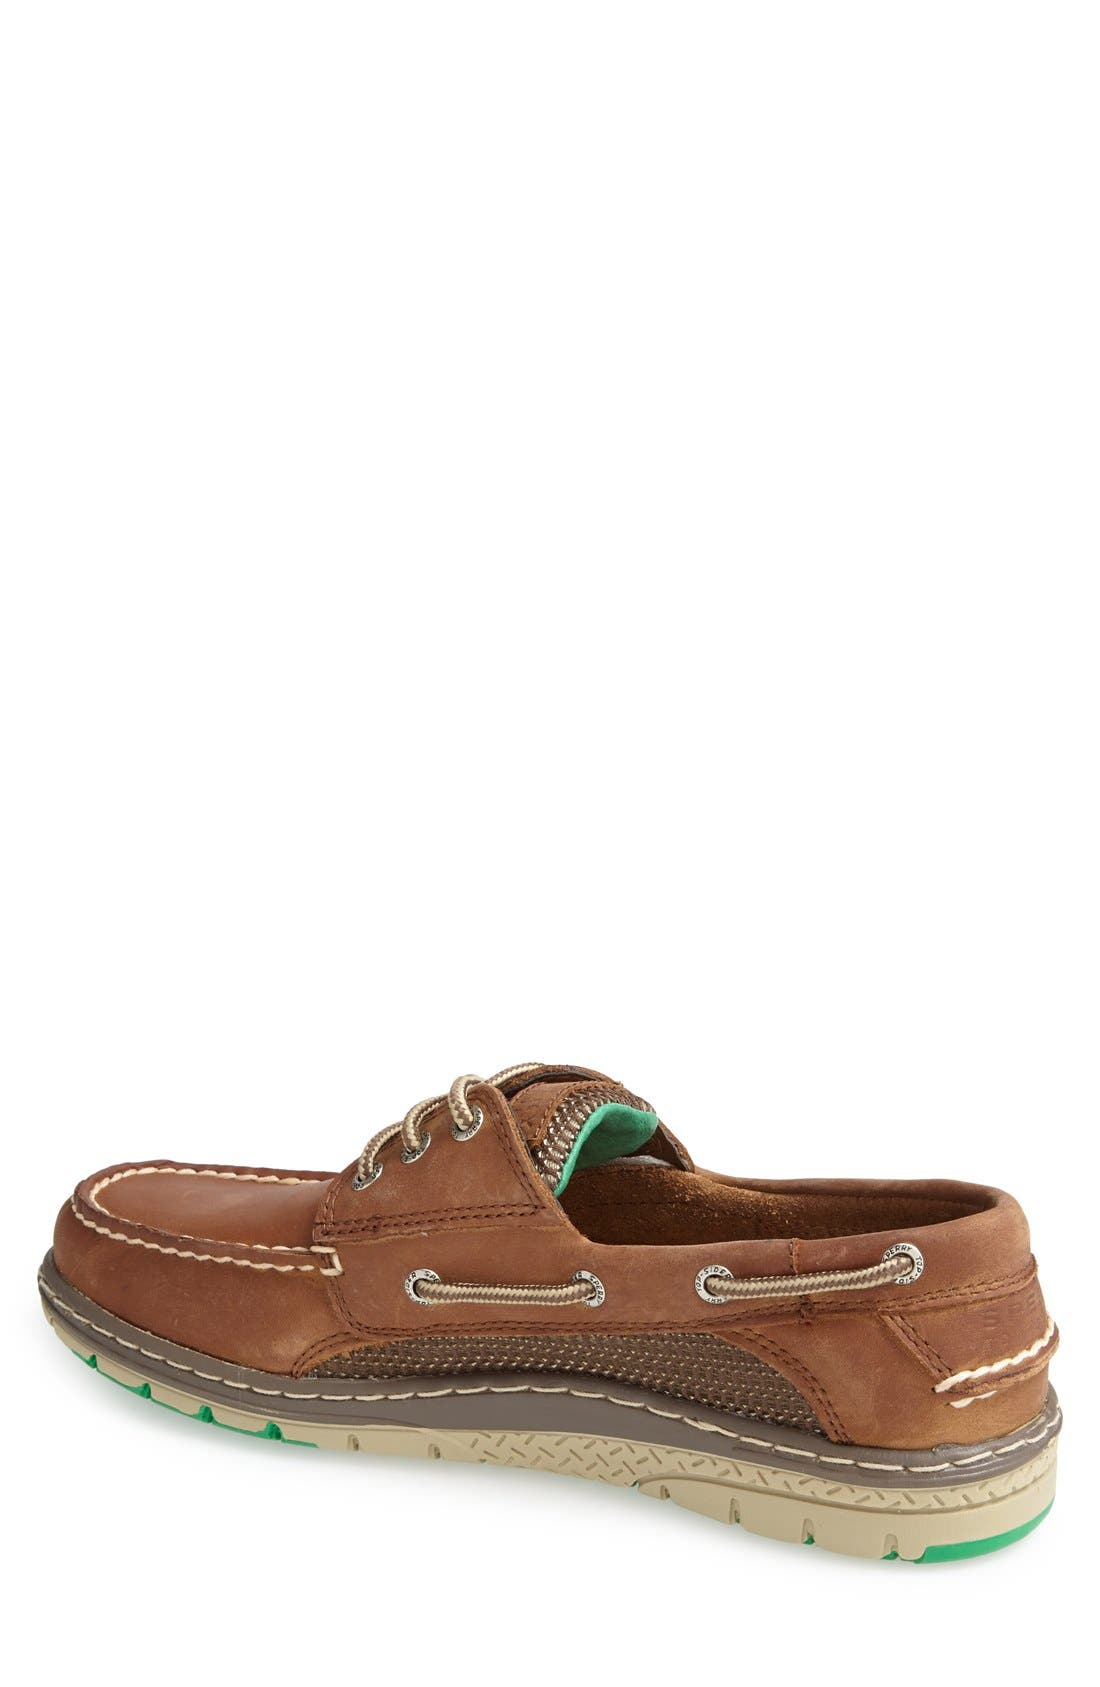 'Billfish Ultralite' Boat Shoe,                             Alternate thumbnail 53, color,